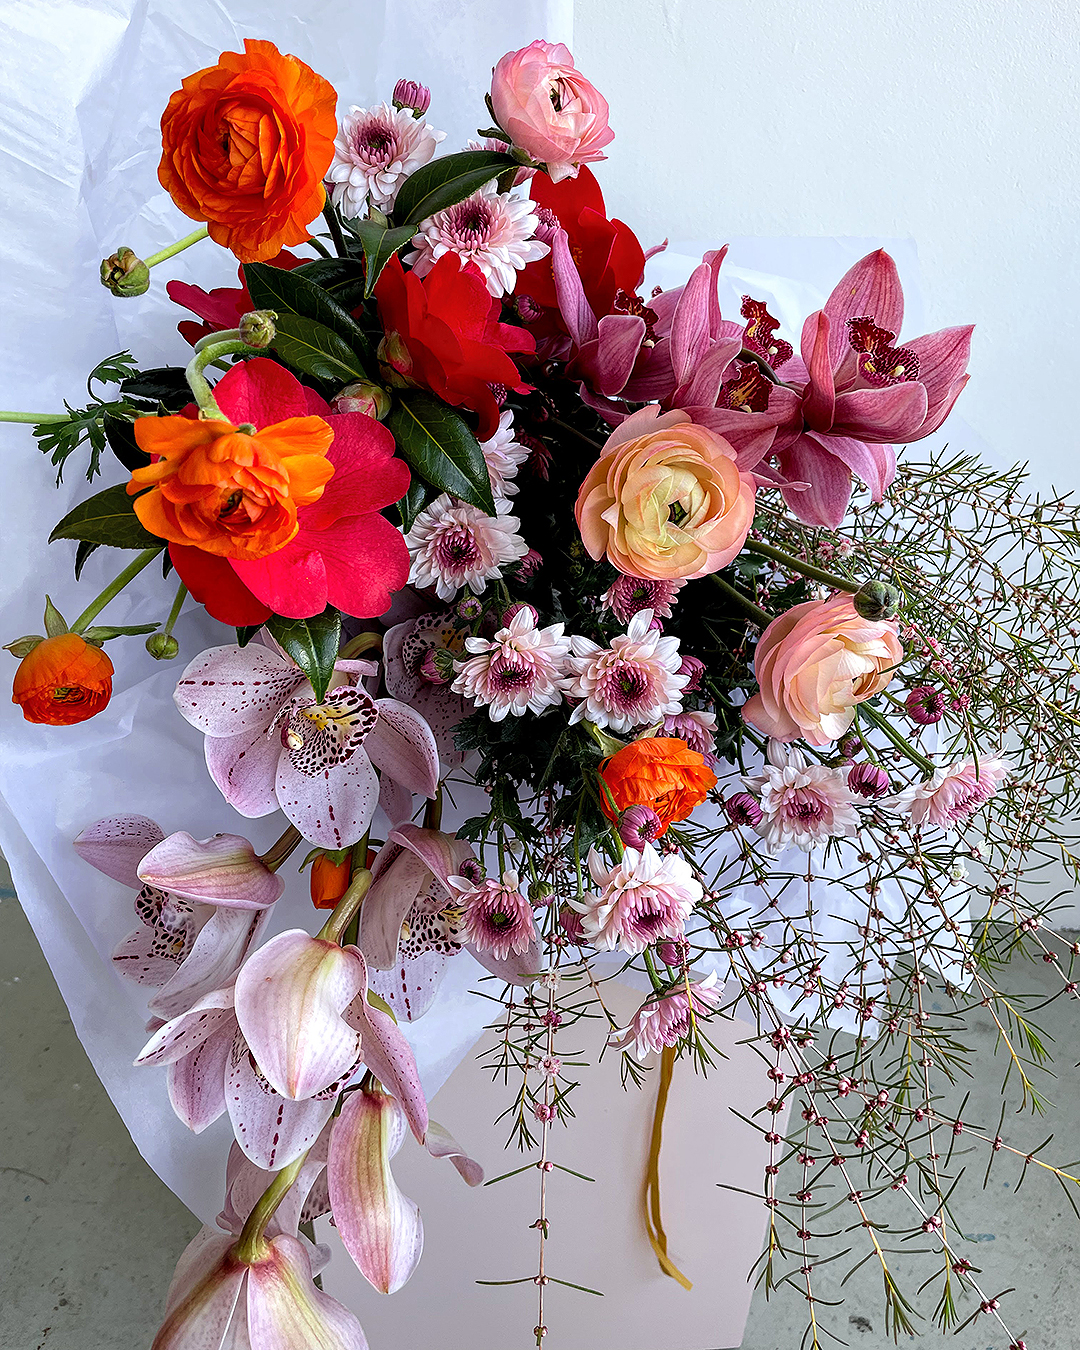 A colourful bouquet from Isadia.